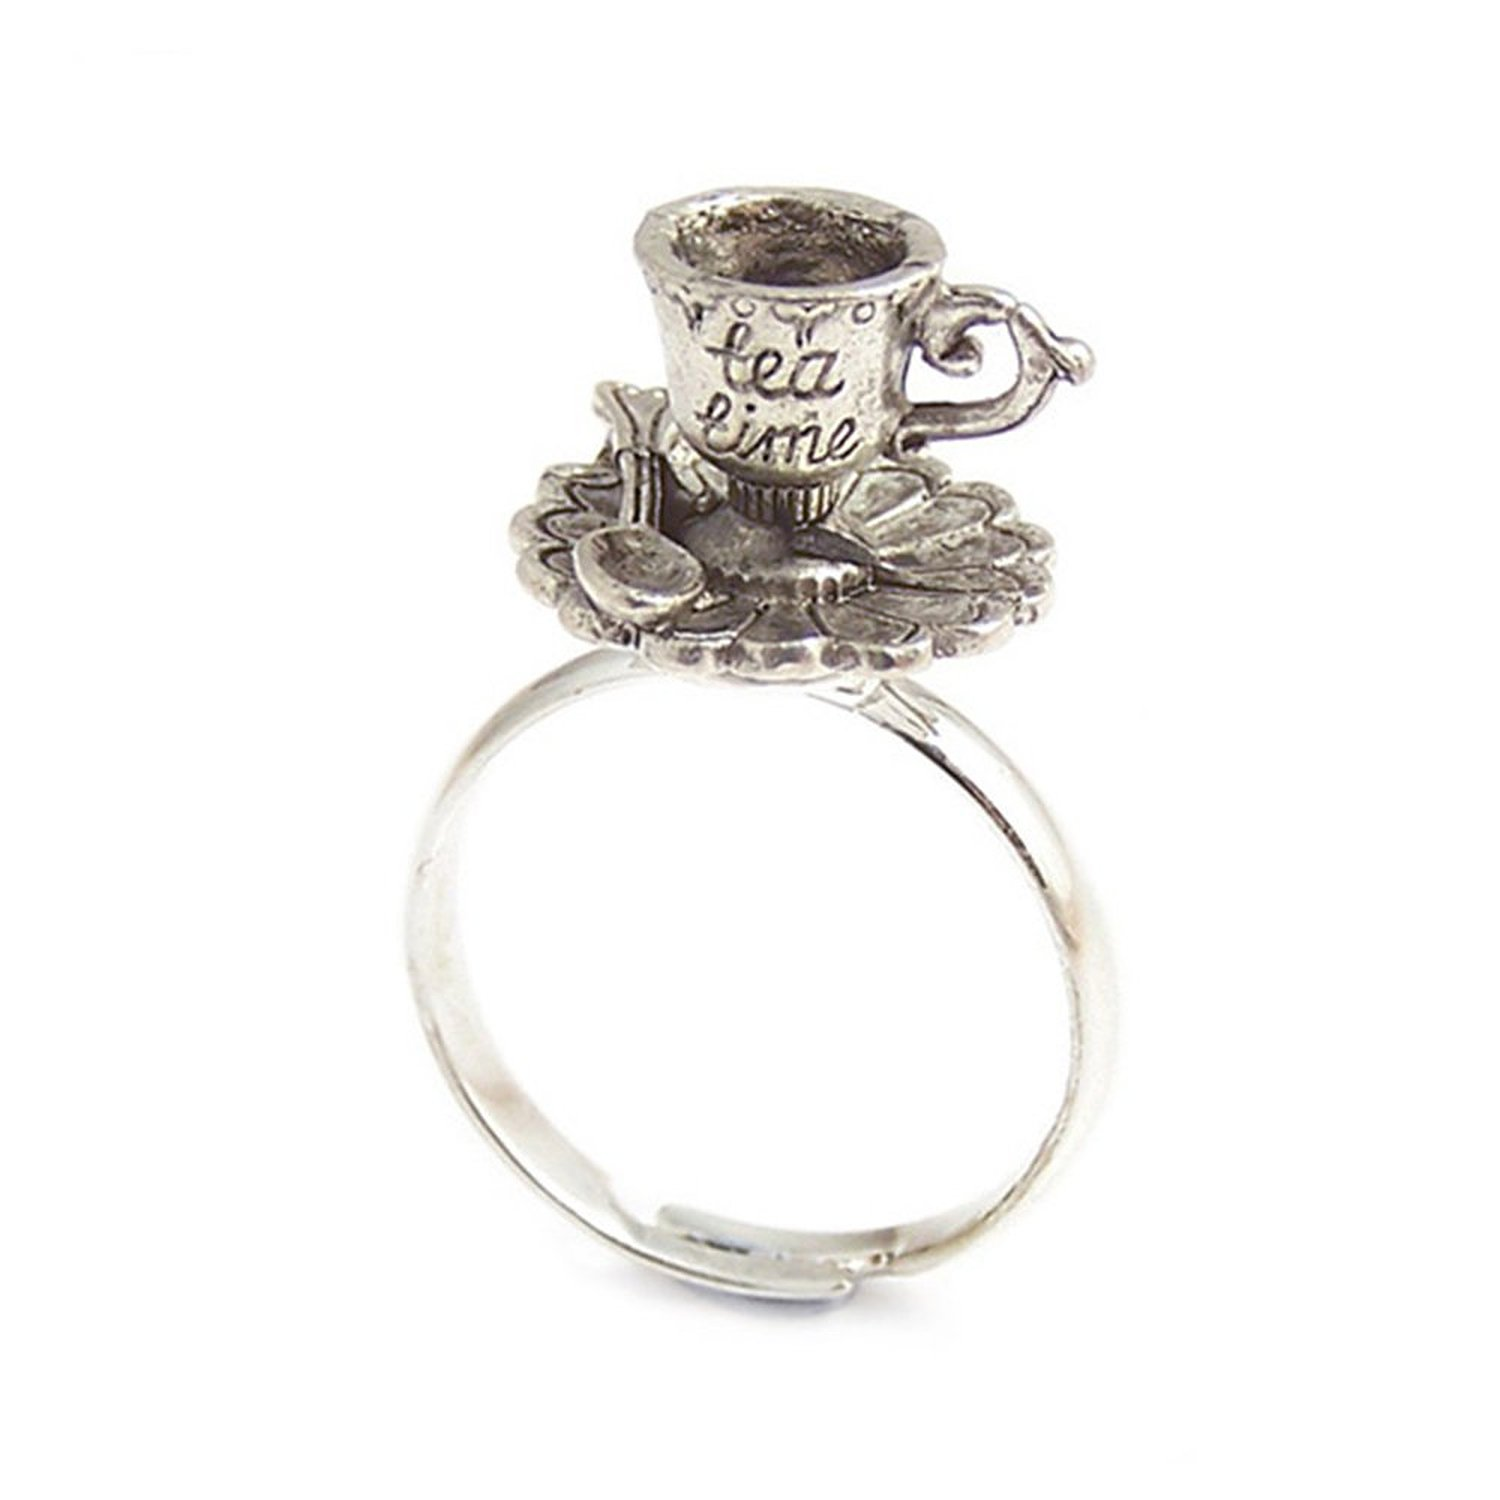 865b1a31b Tea cup ring - Alice in Wonderland adjustable ring TEA pot TIME:  LunarraStar Jewellery: Amazon.co.uk: Jewellery